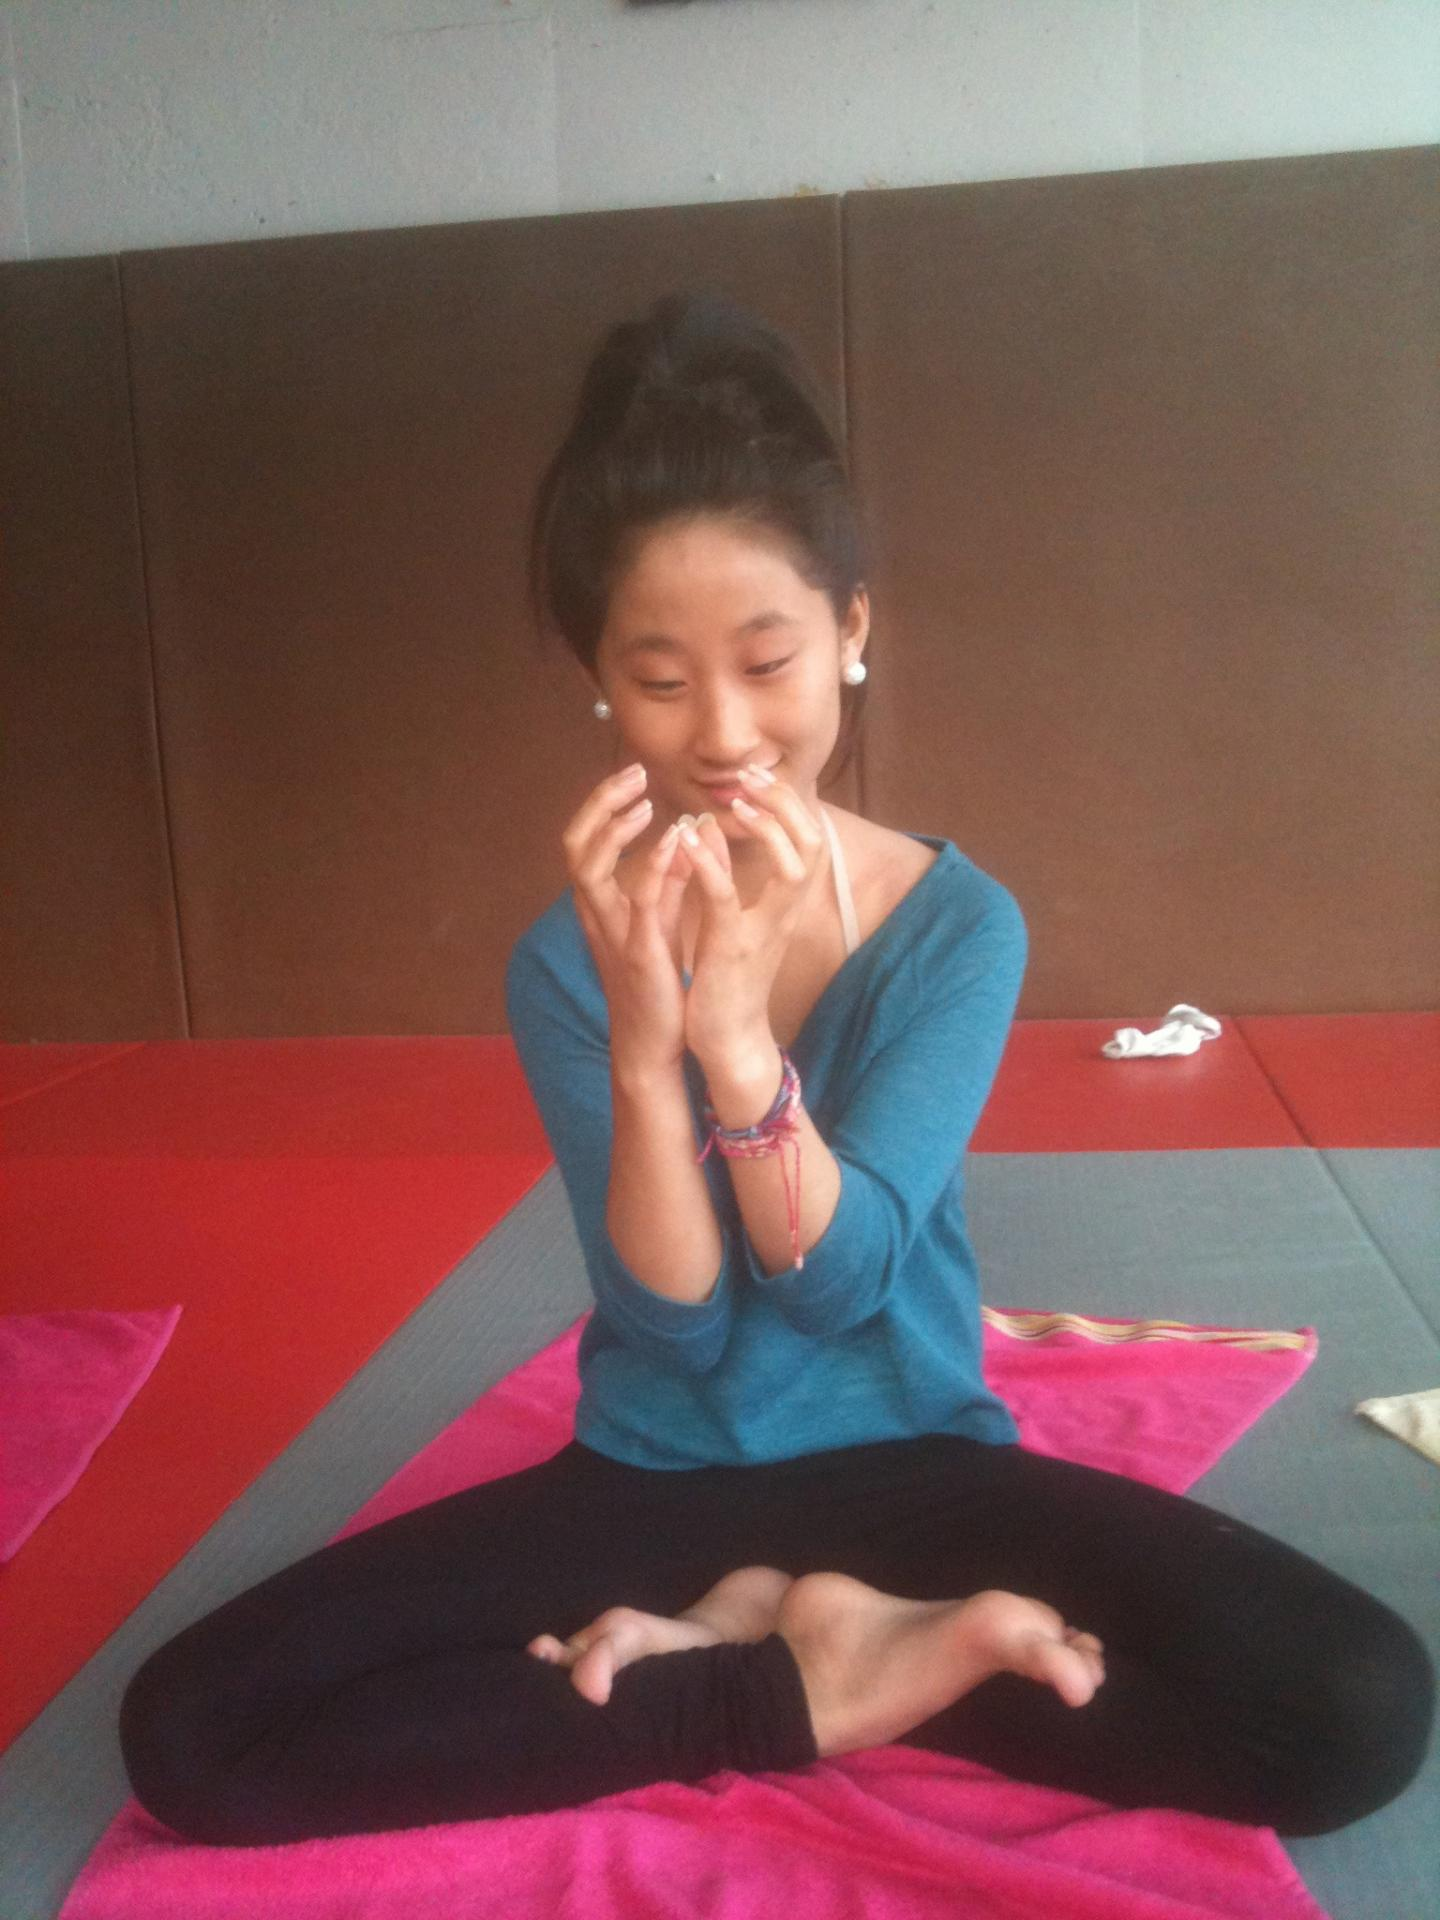 yoga dating australia Spiritual singles is the best dating site for spiritual, mindful singles for open minded, spiritual singles experience an evolved, conscious dating site.